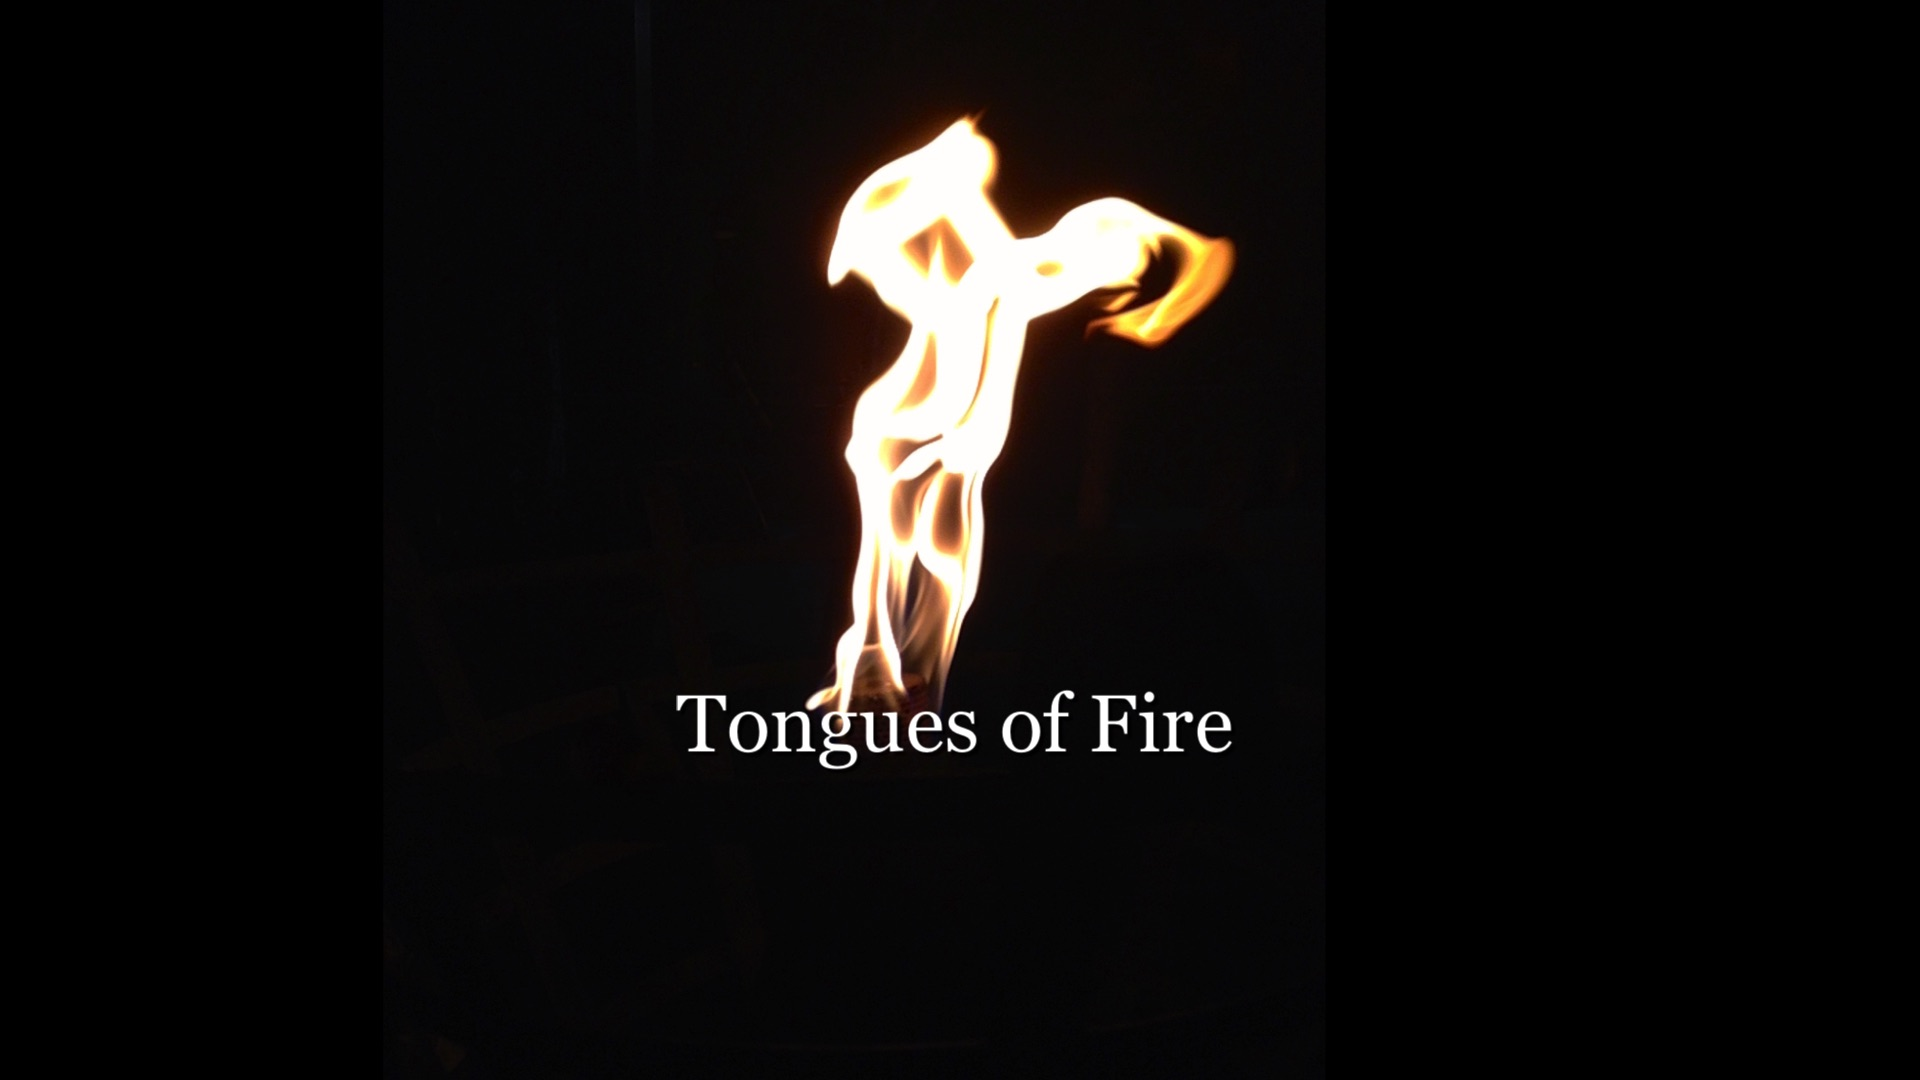 tongues-of-fire-hd1080p-m4v-image